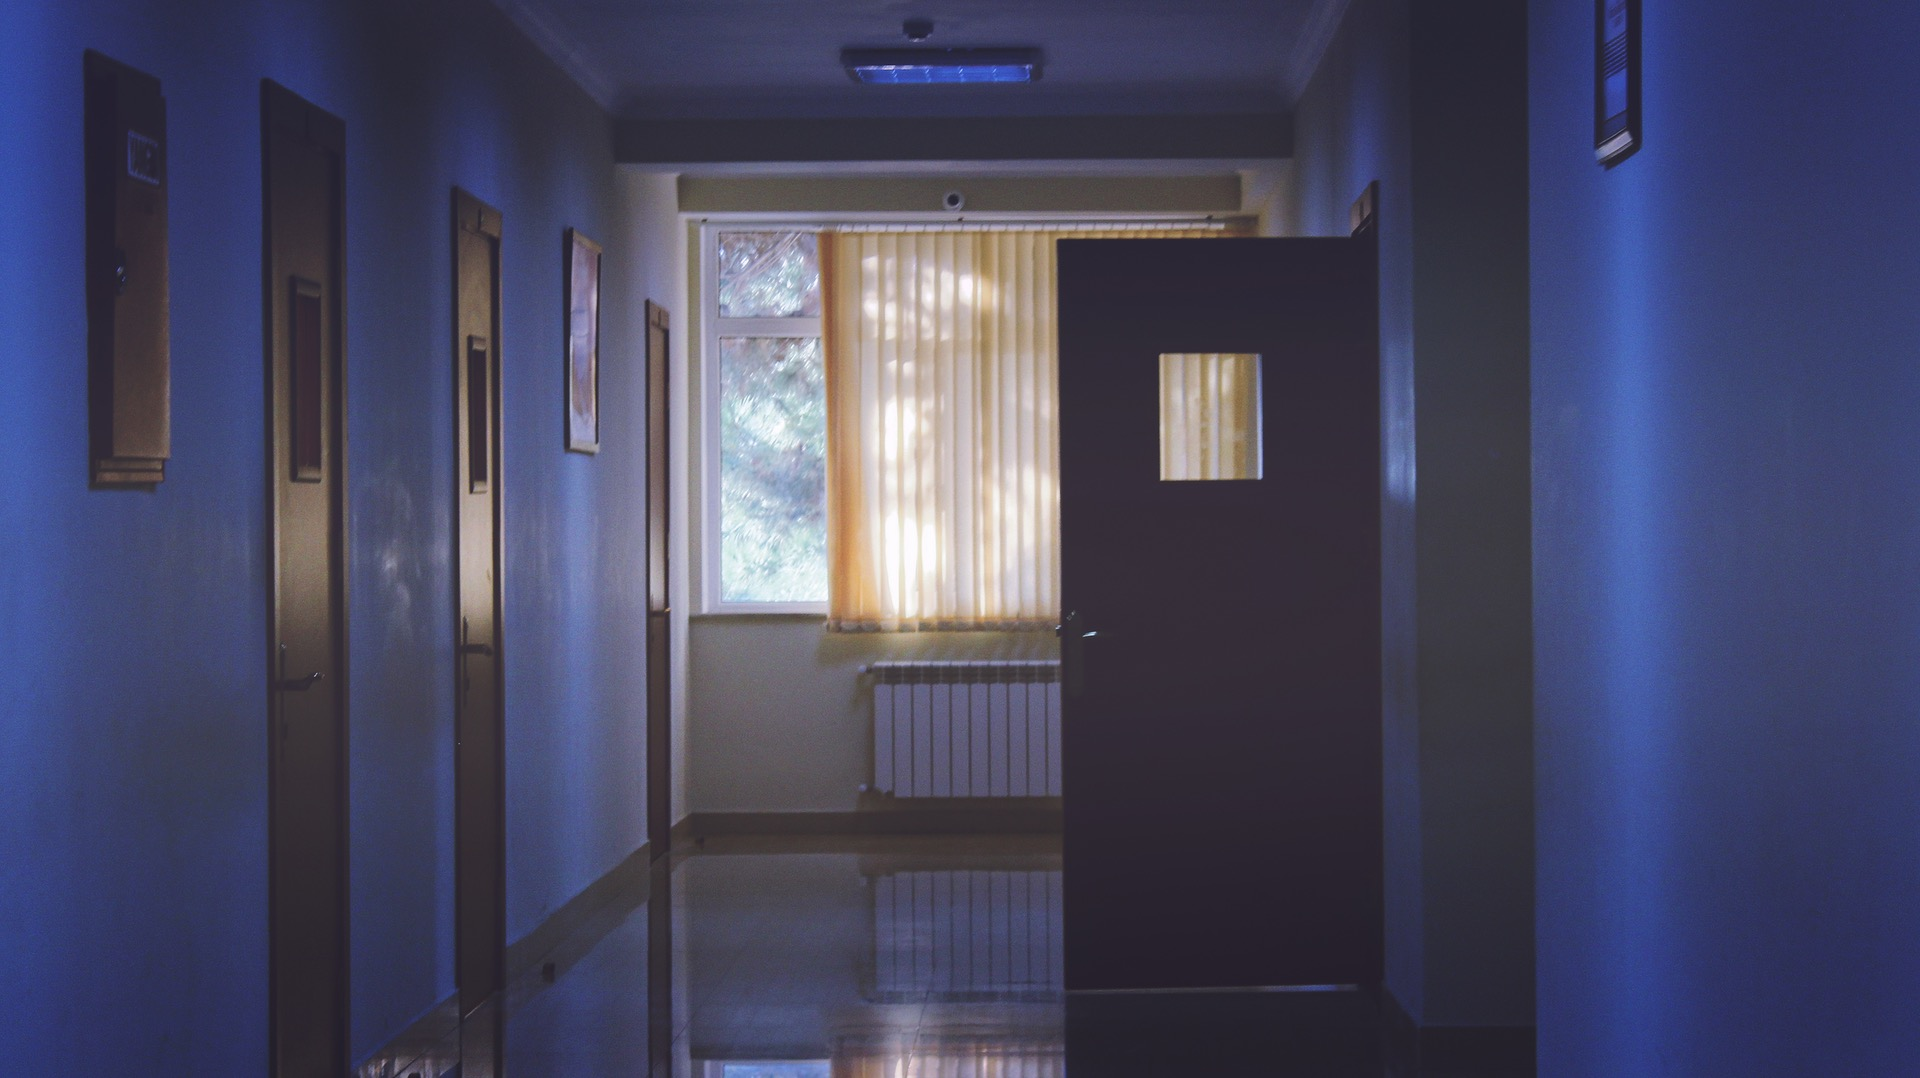 Study: Poorer Patients May Be Hardest Hit By Observational Hospital Care